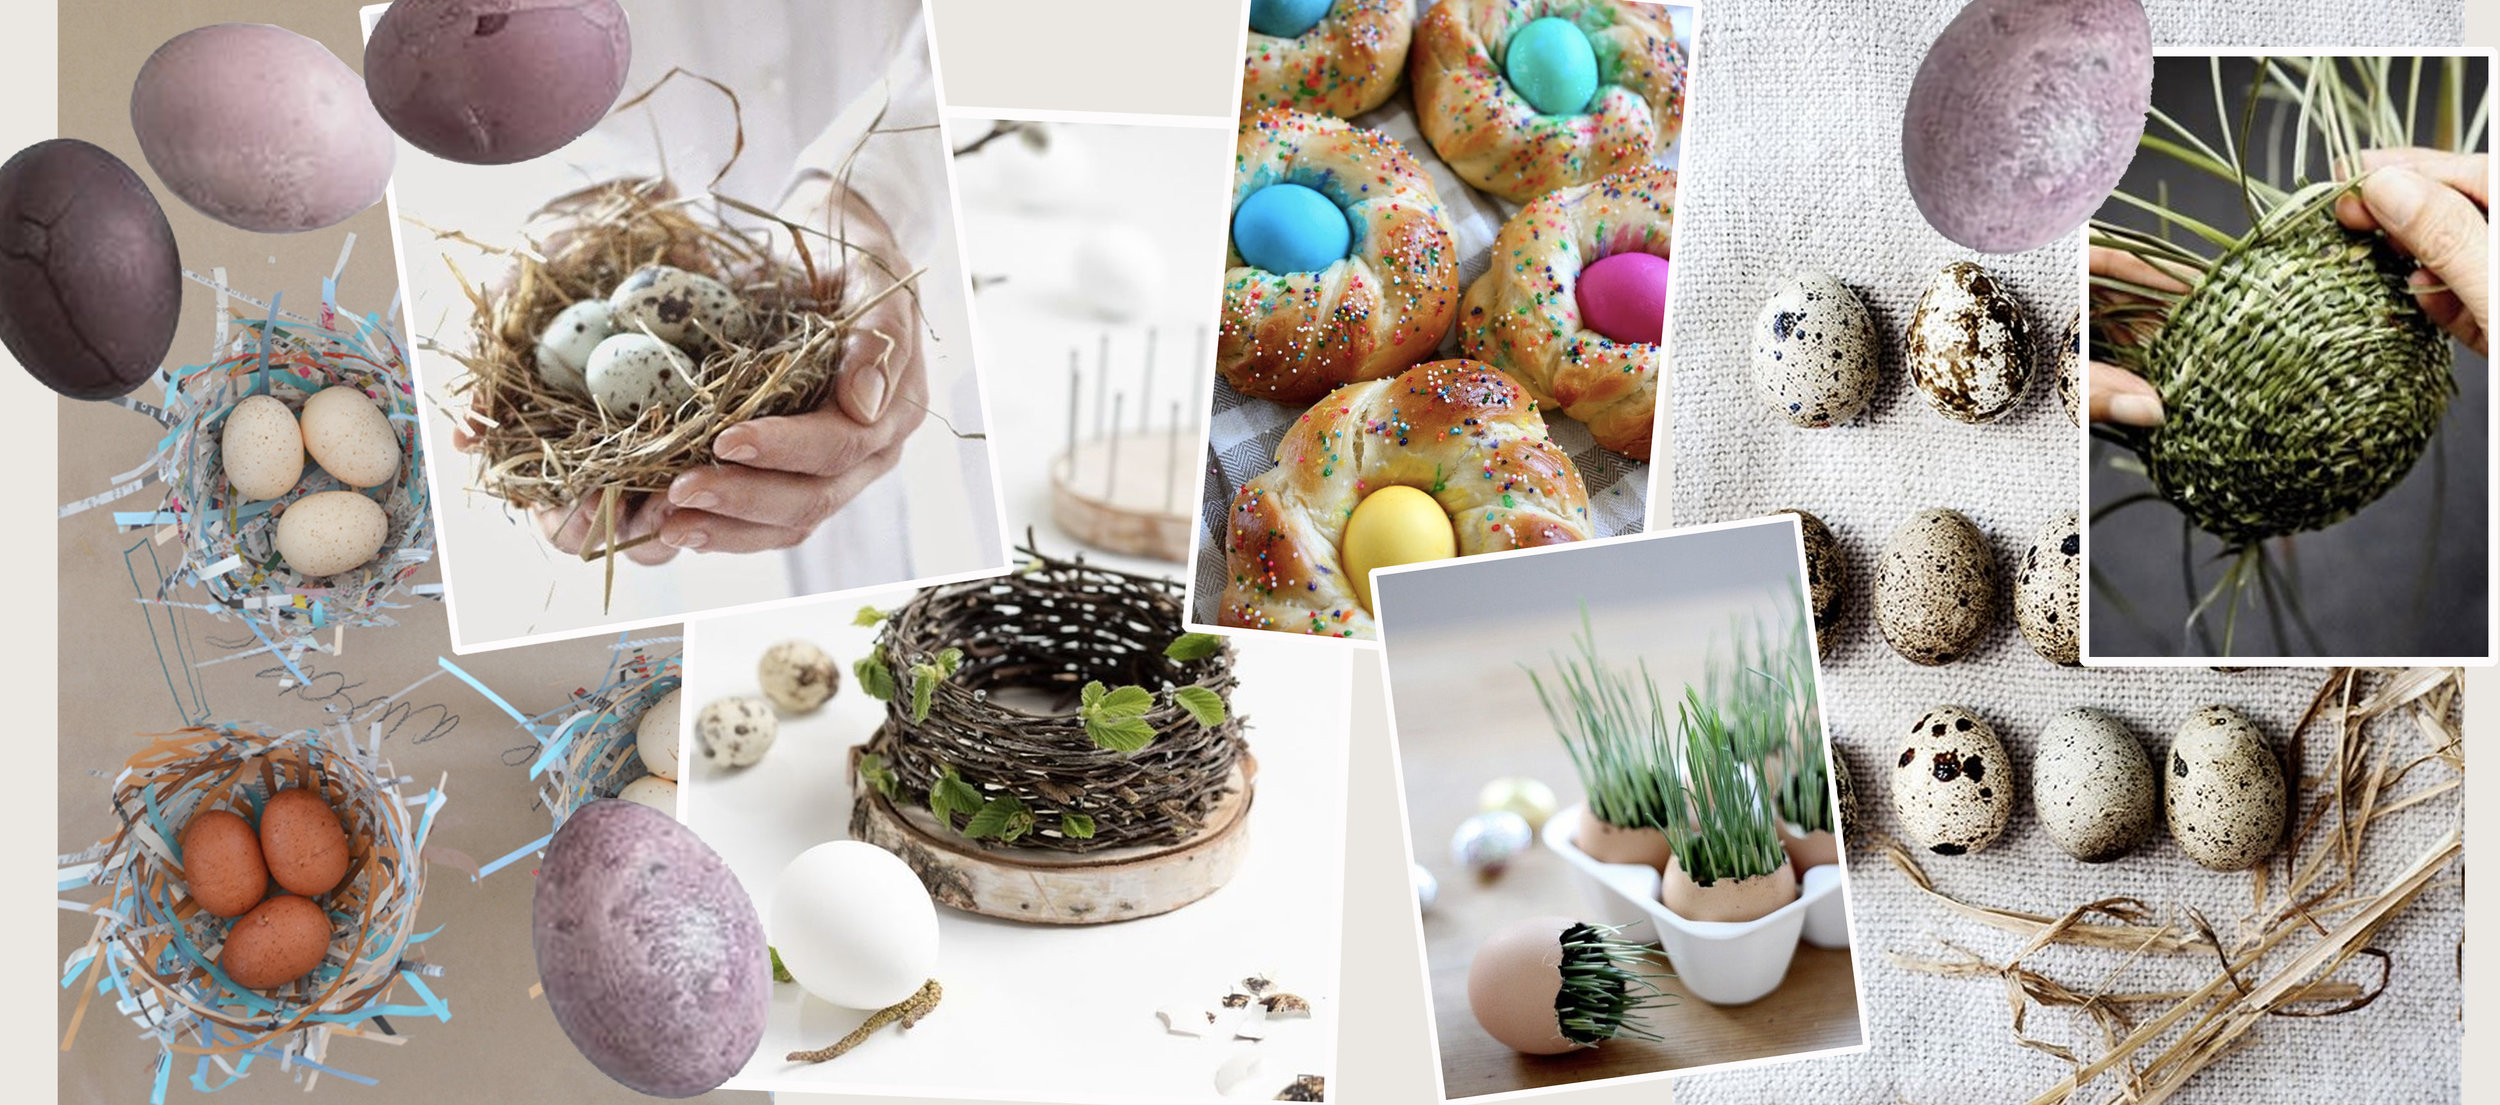 Hygge, Easter preparations.jpg